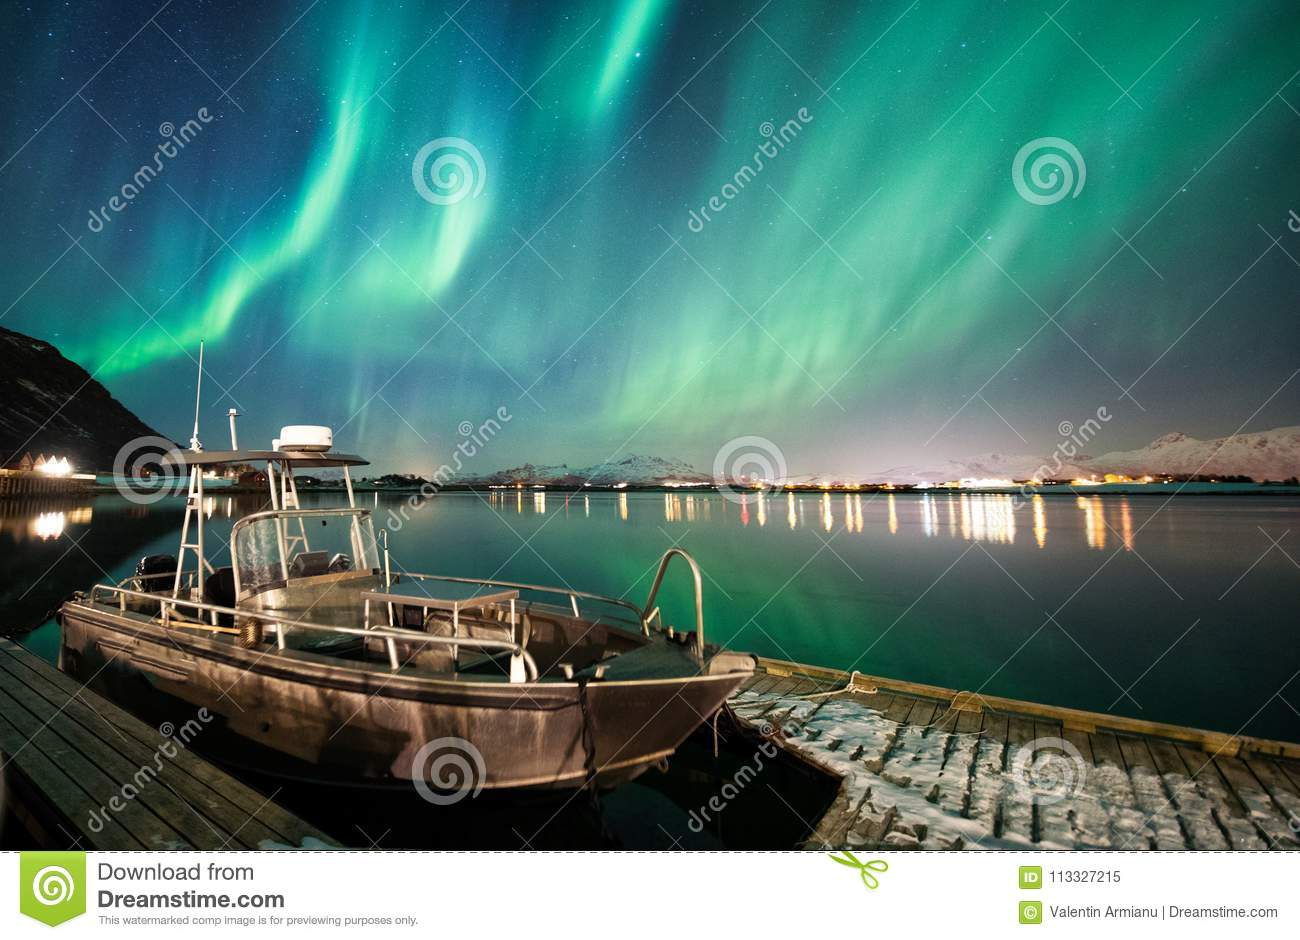 Boat with northern lights background